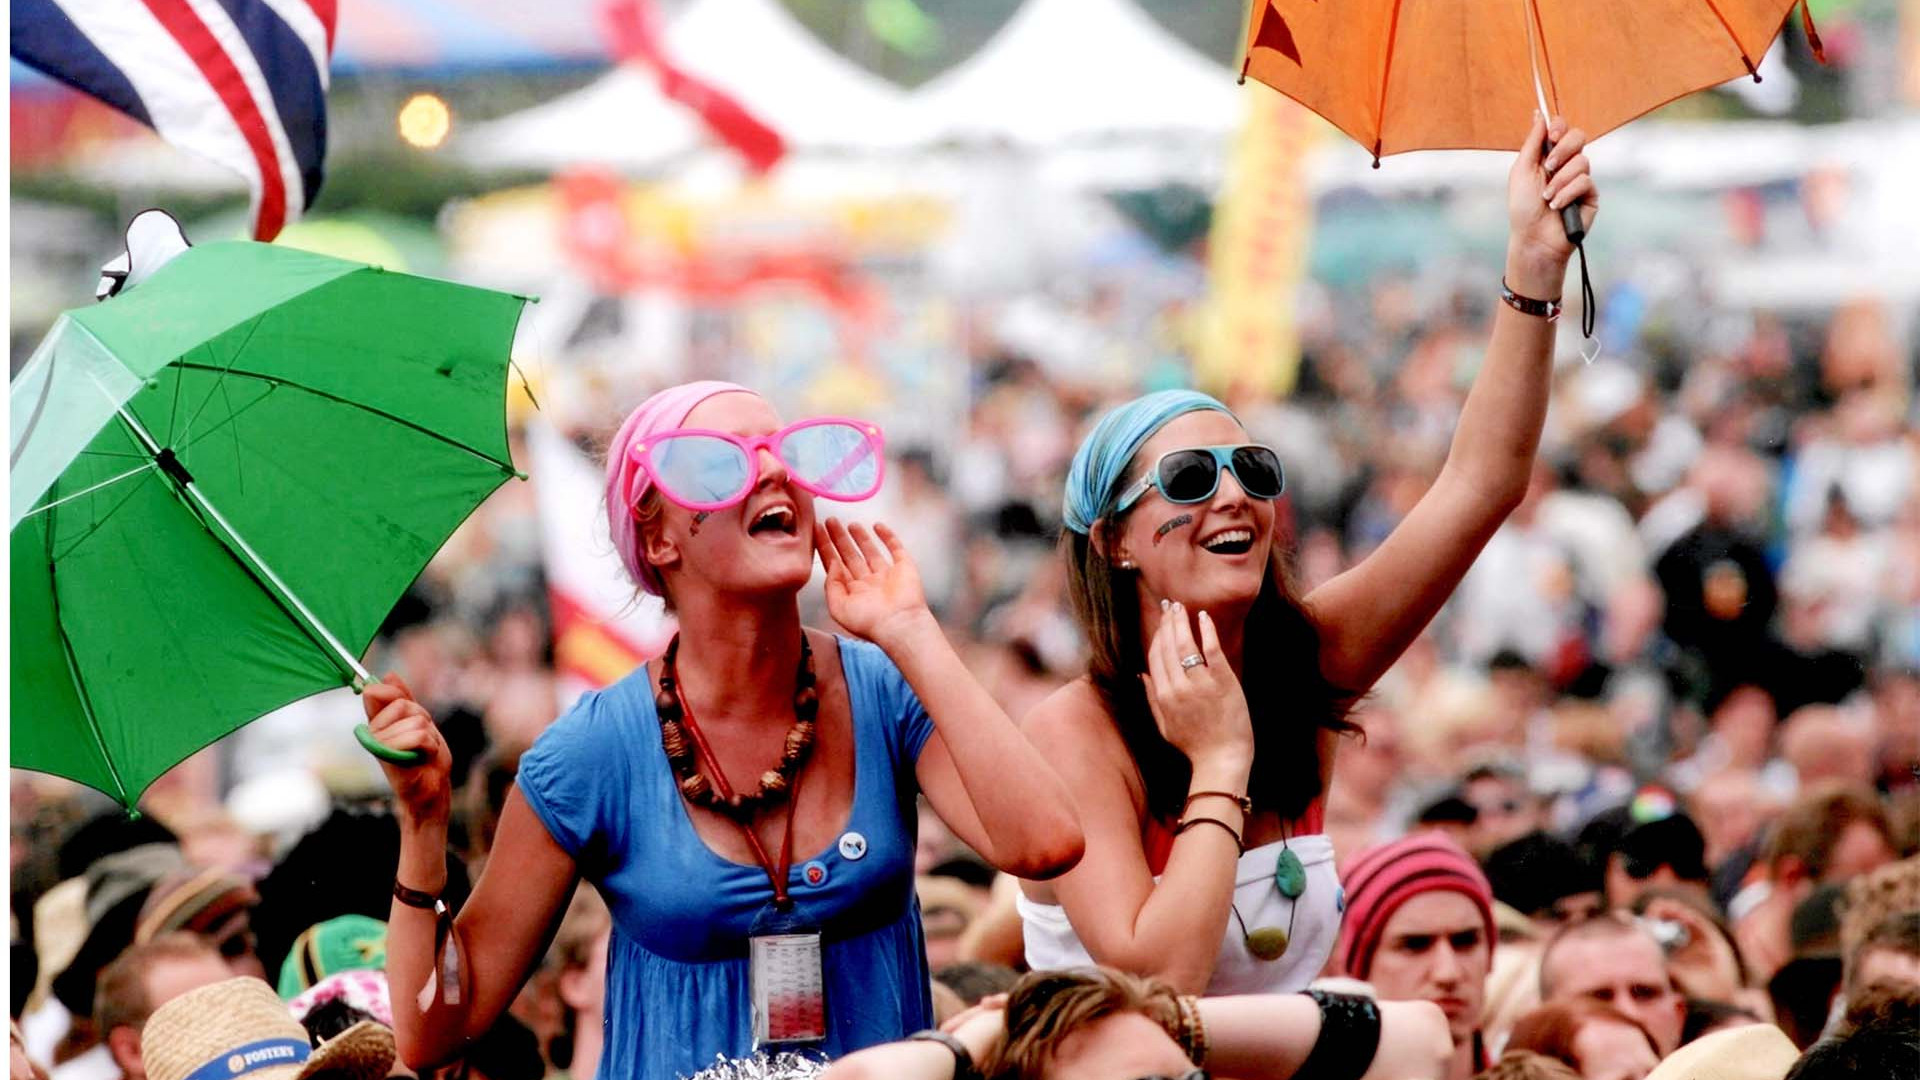 Revellers at Isle of Wight festival